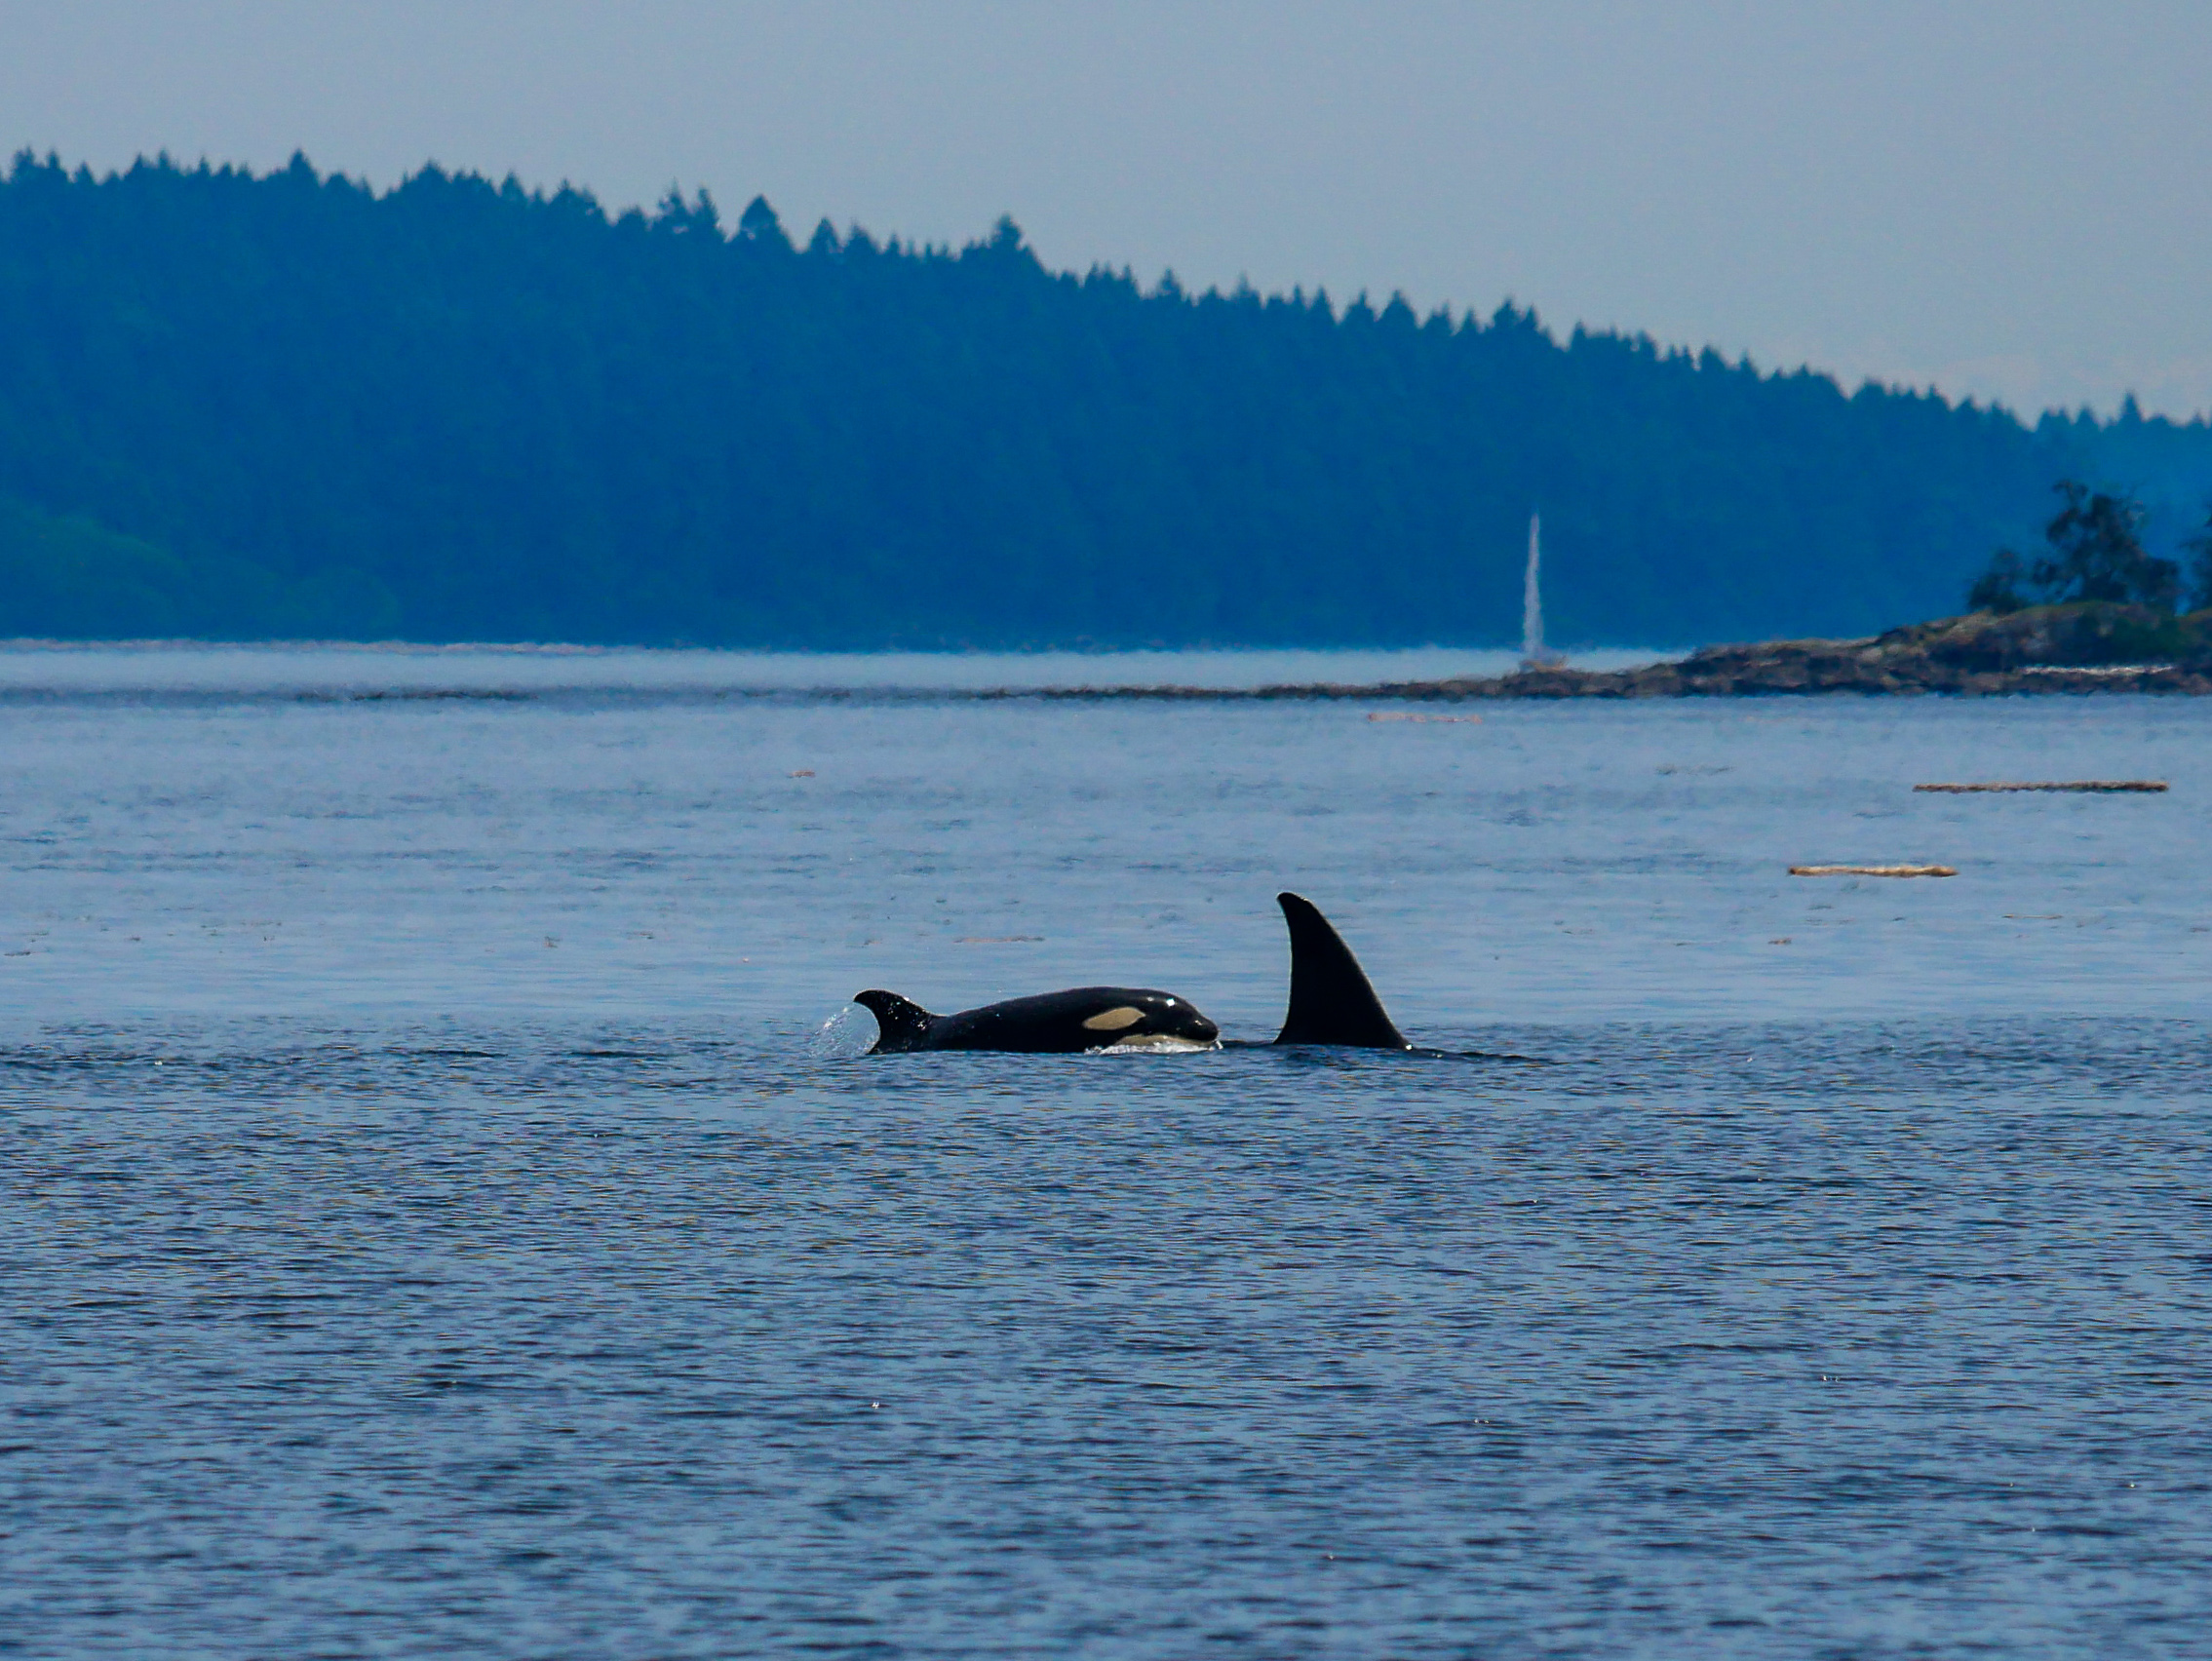 T123D surfaces, notice a yellow hue to the eye patch - common in orca calves. Photo by Alanna Vivani.